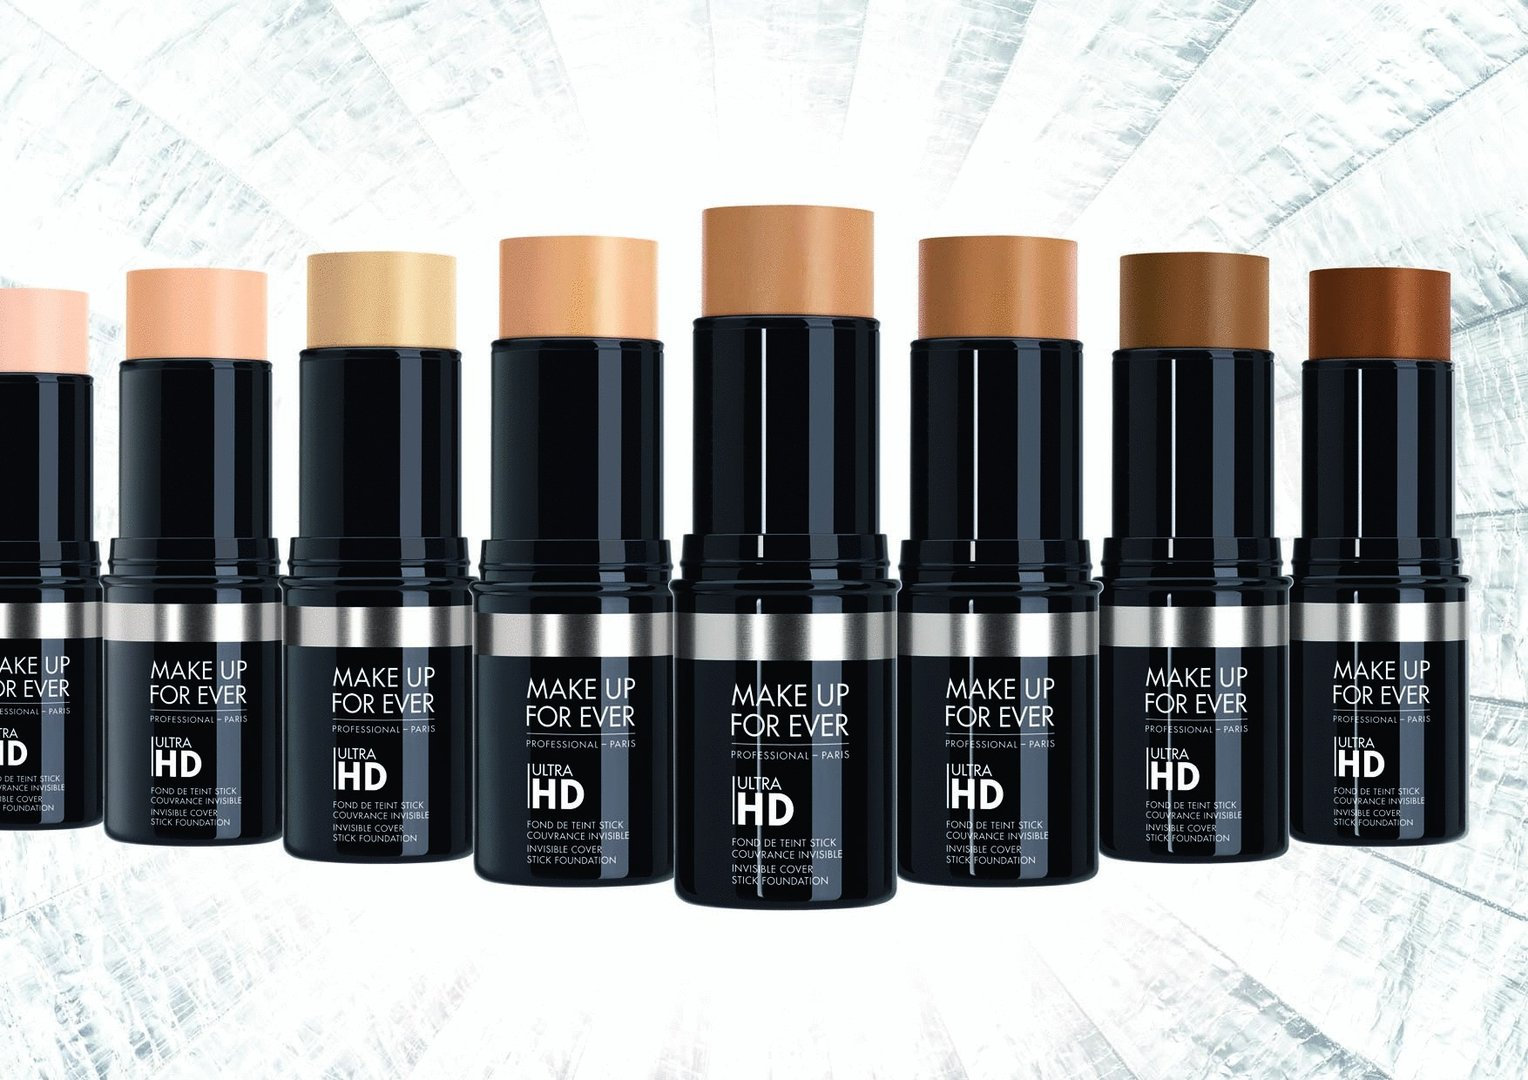 Makeup forever ultra hd foundation stick